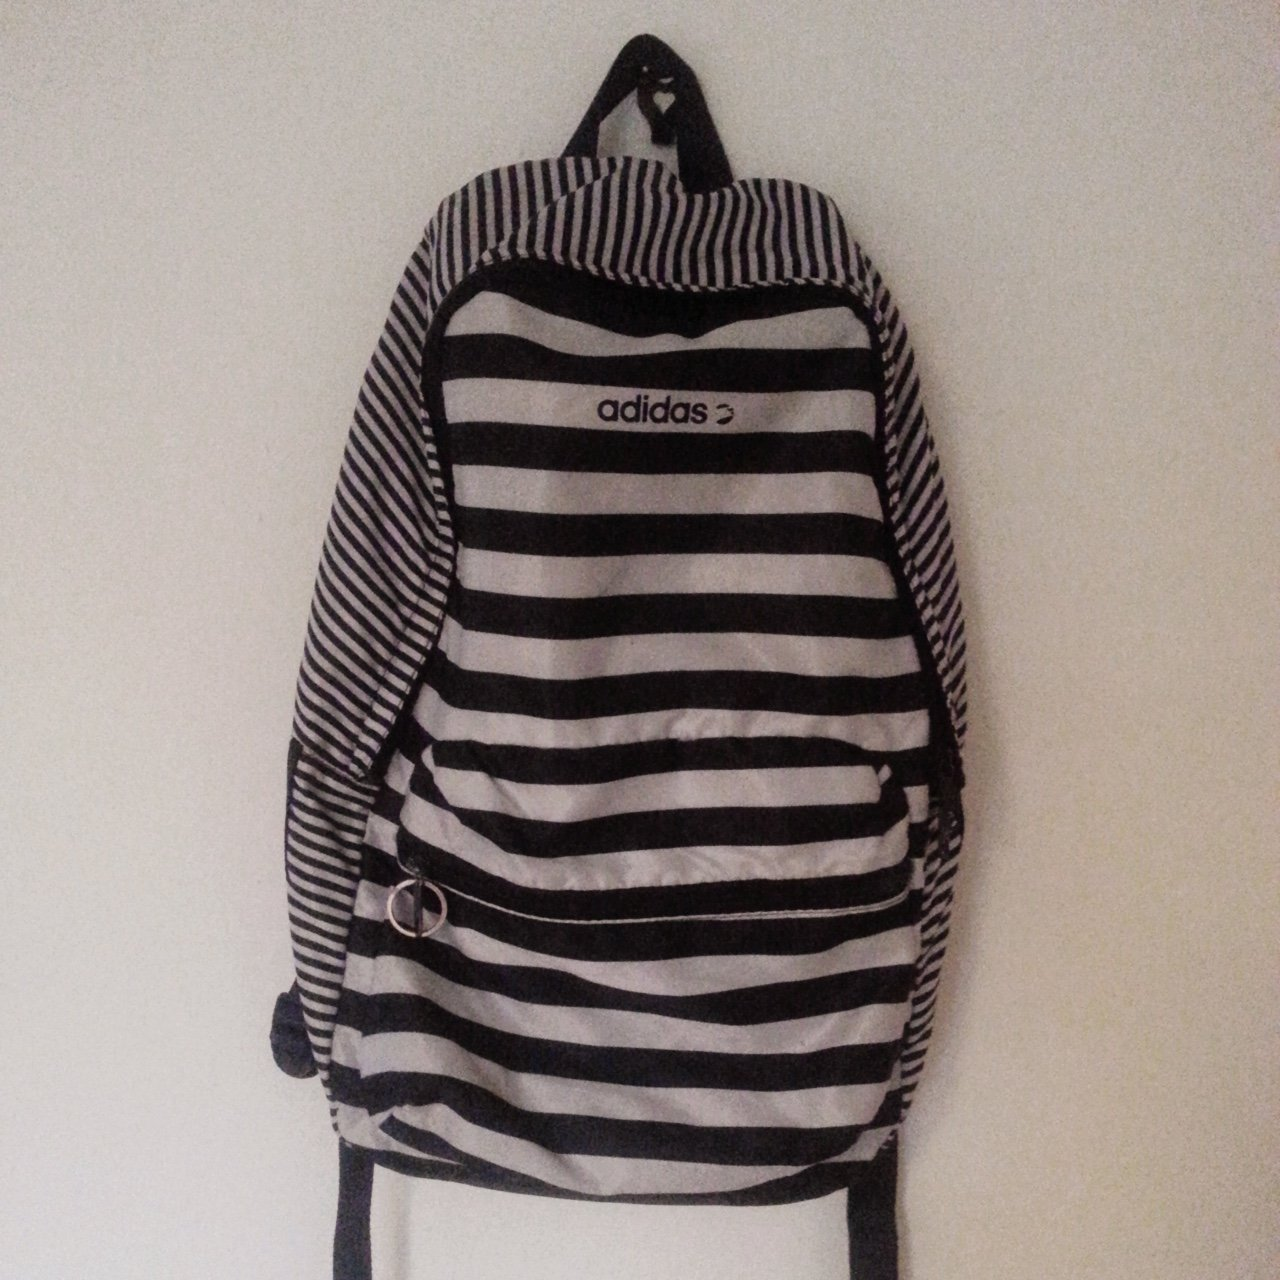 500c0b5d6cc3 Adidas neo bag or backpack